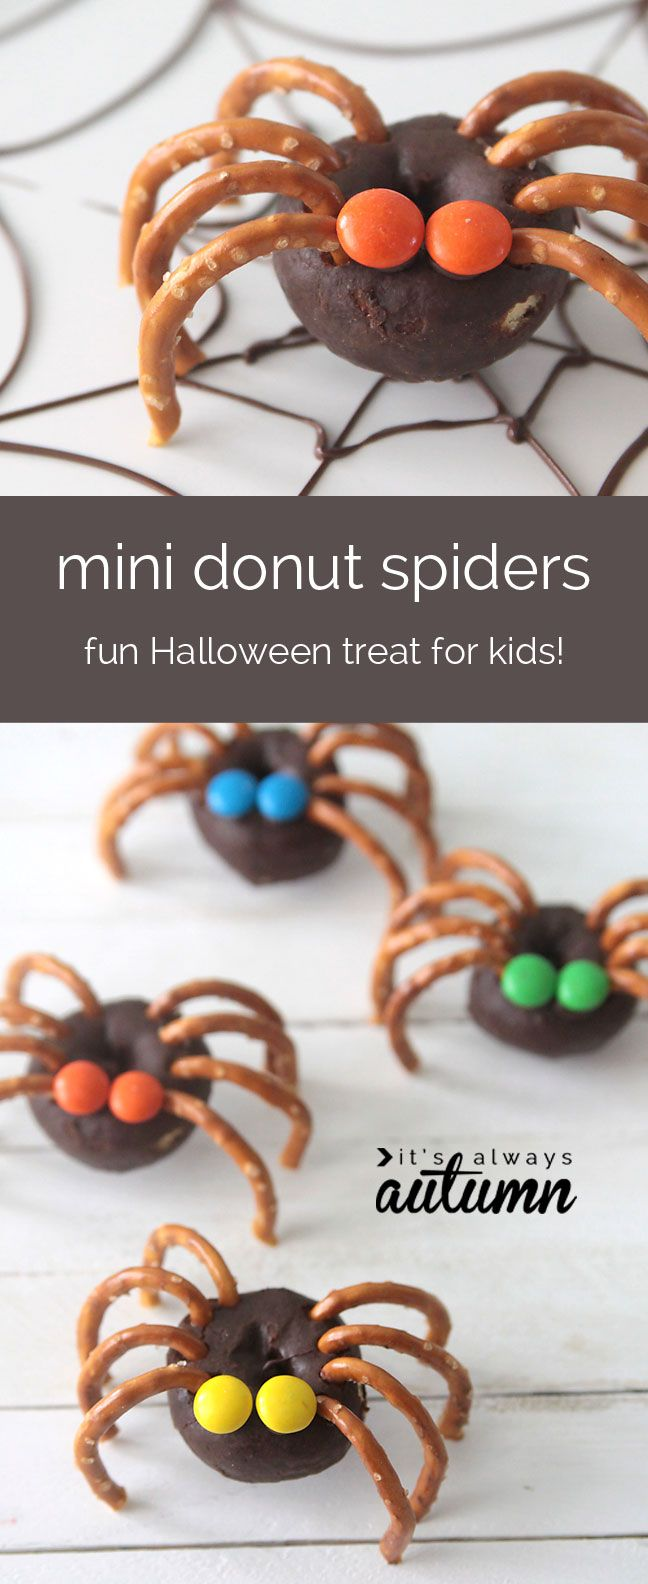 love these mini donut spiders! super easy and fun treat to make with your kids this Halloween.